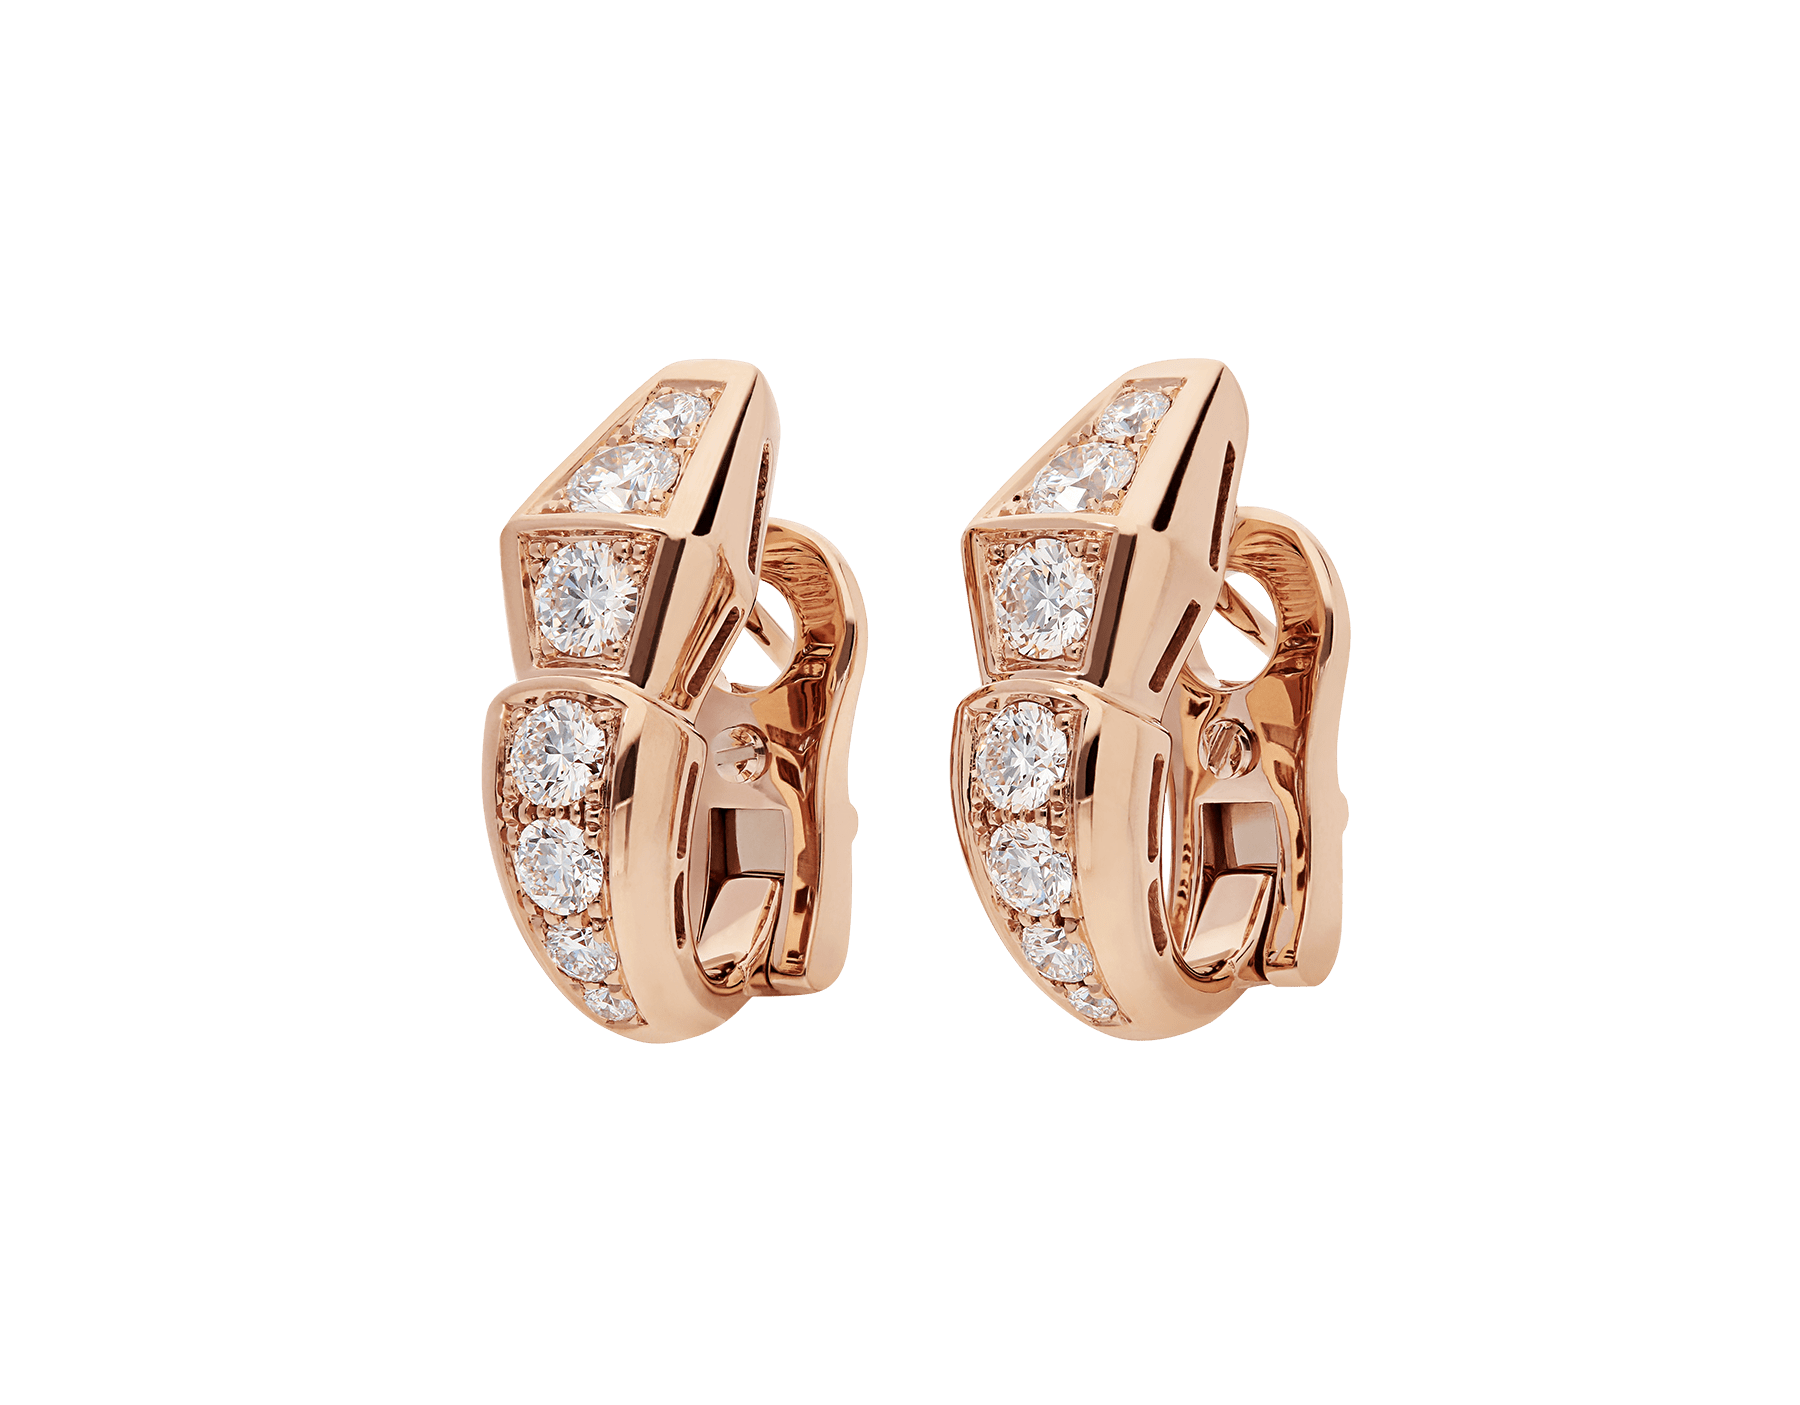 Serpenti Viper earrings in 18 kt rose gold, set with pavé diamonds. 354035 image 2